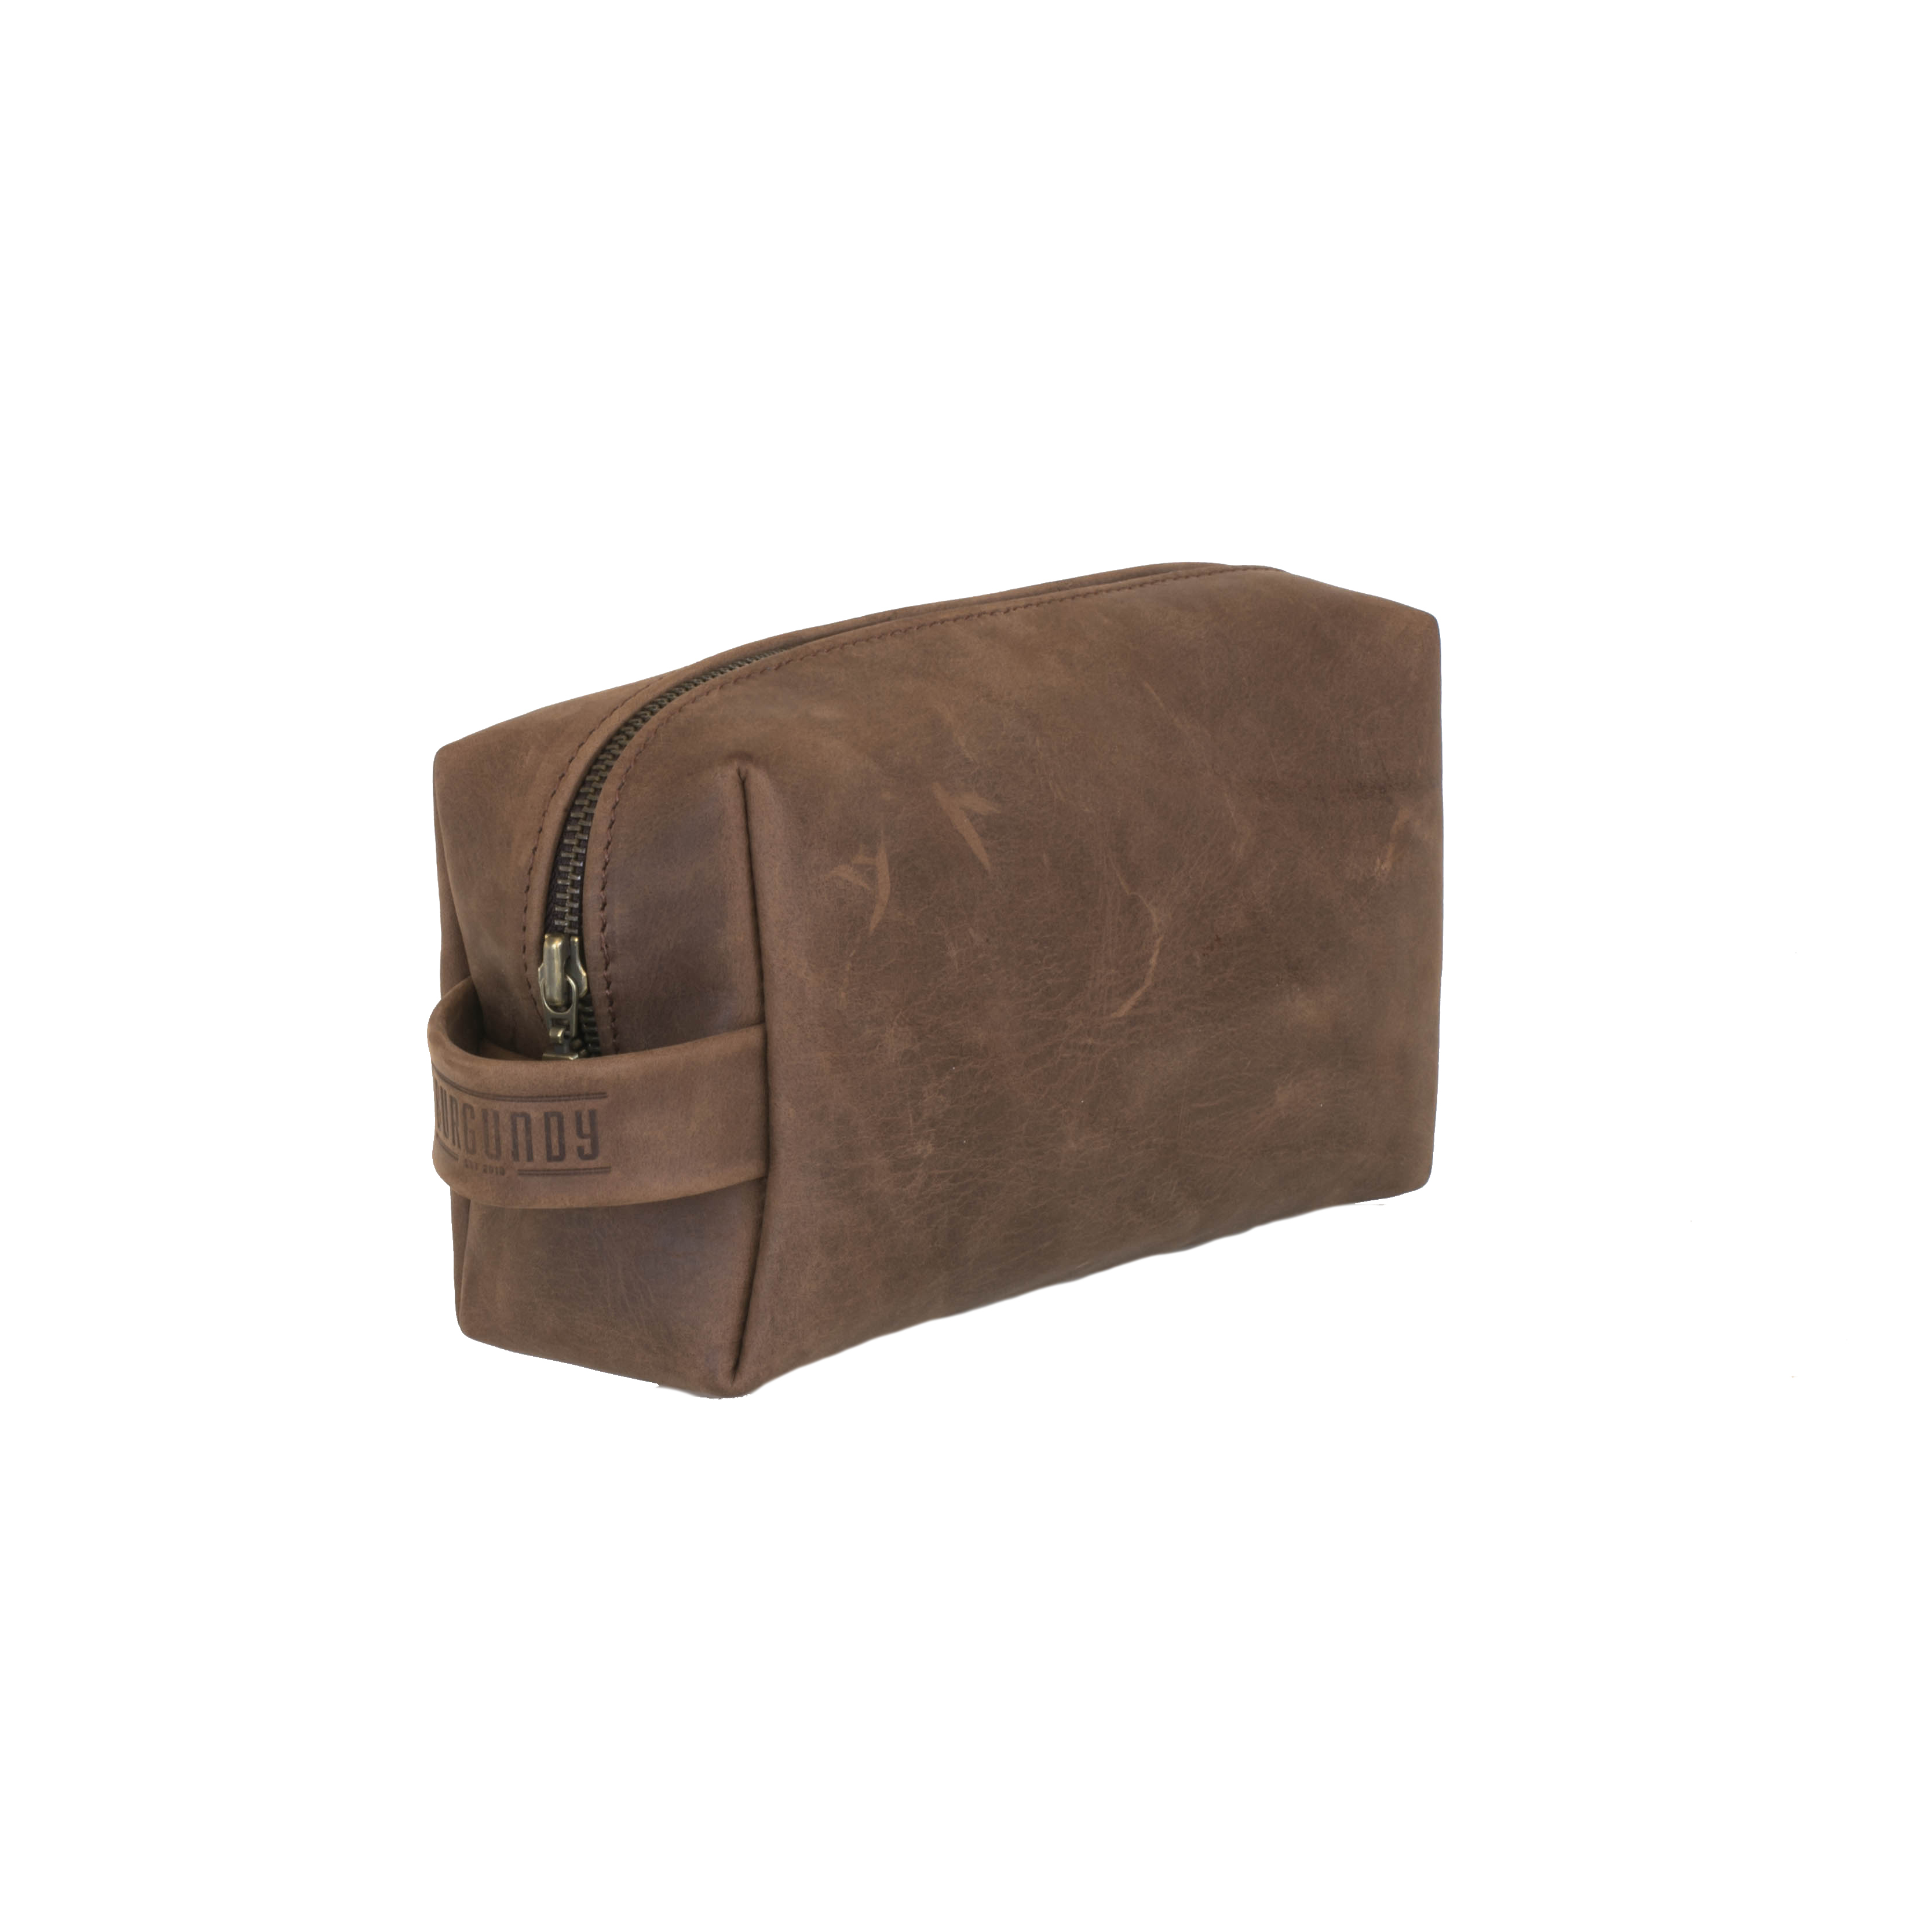 Multi functional, waterproof lined pouch. This can be used for various storage needs of smalls, with its main function being a toiletry bag. 